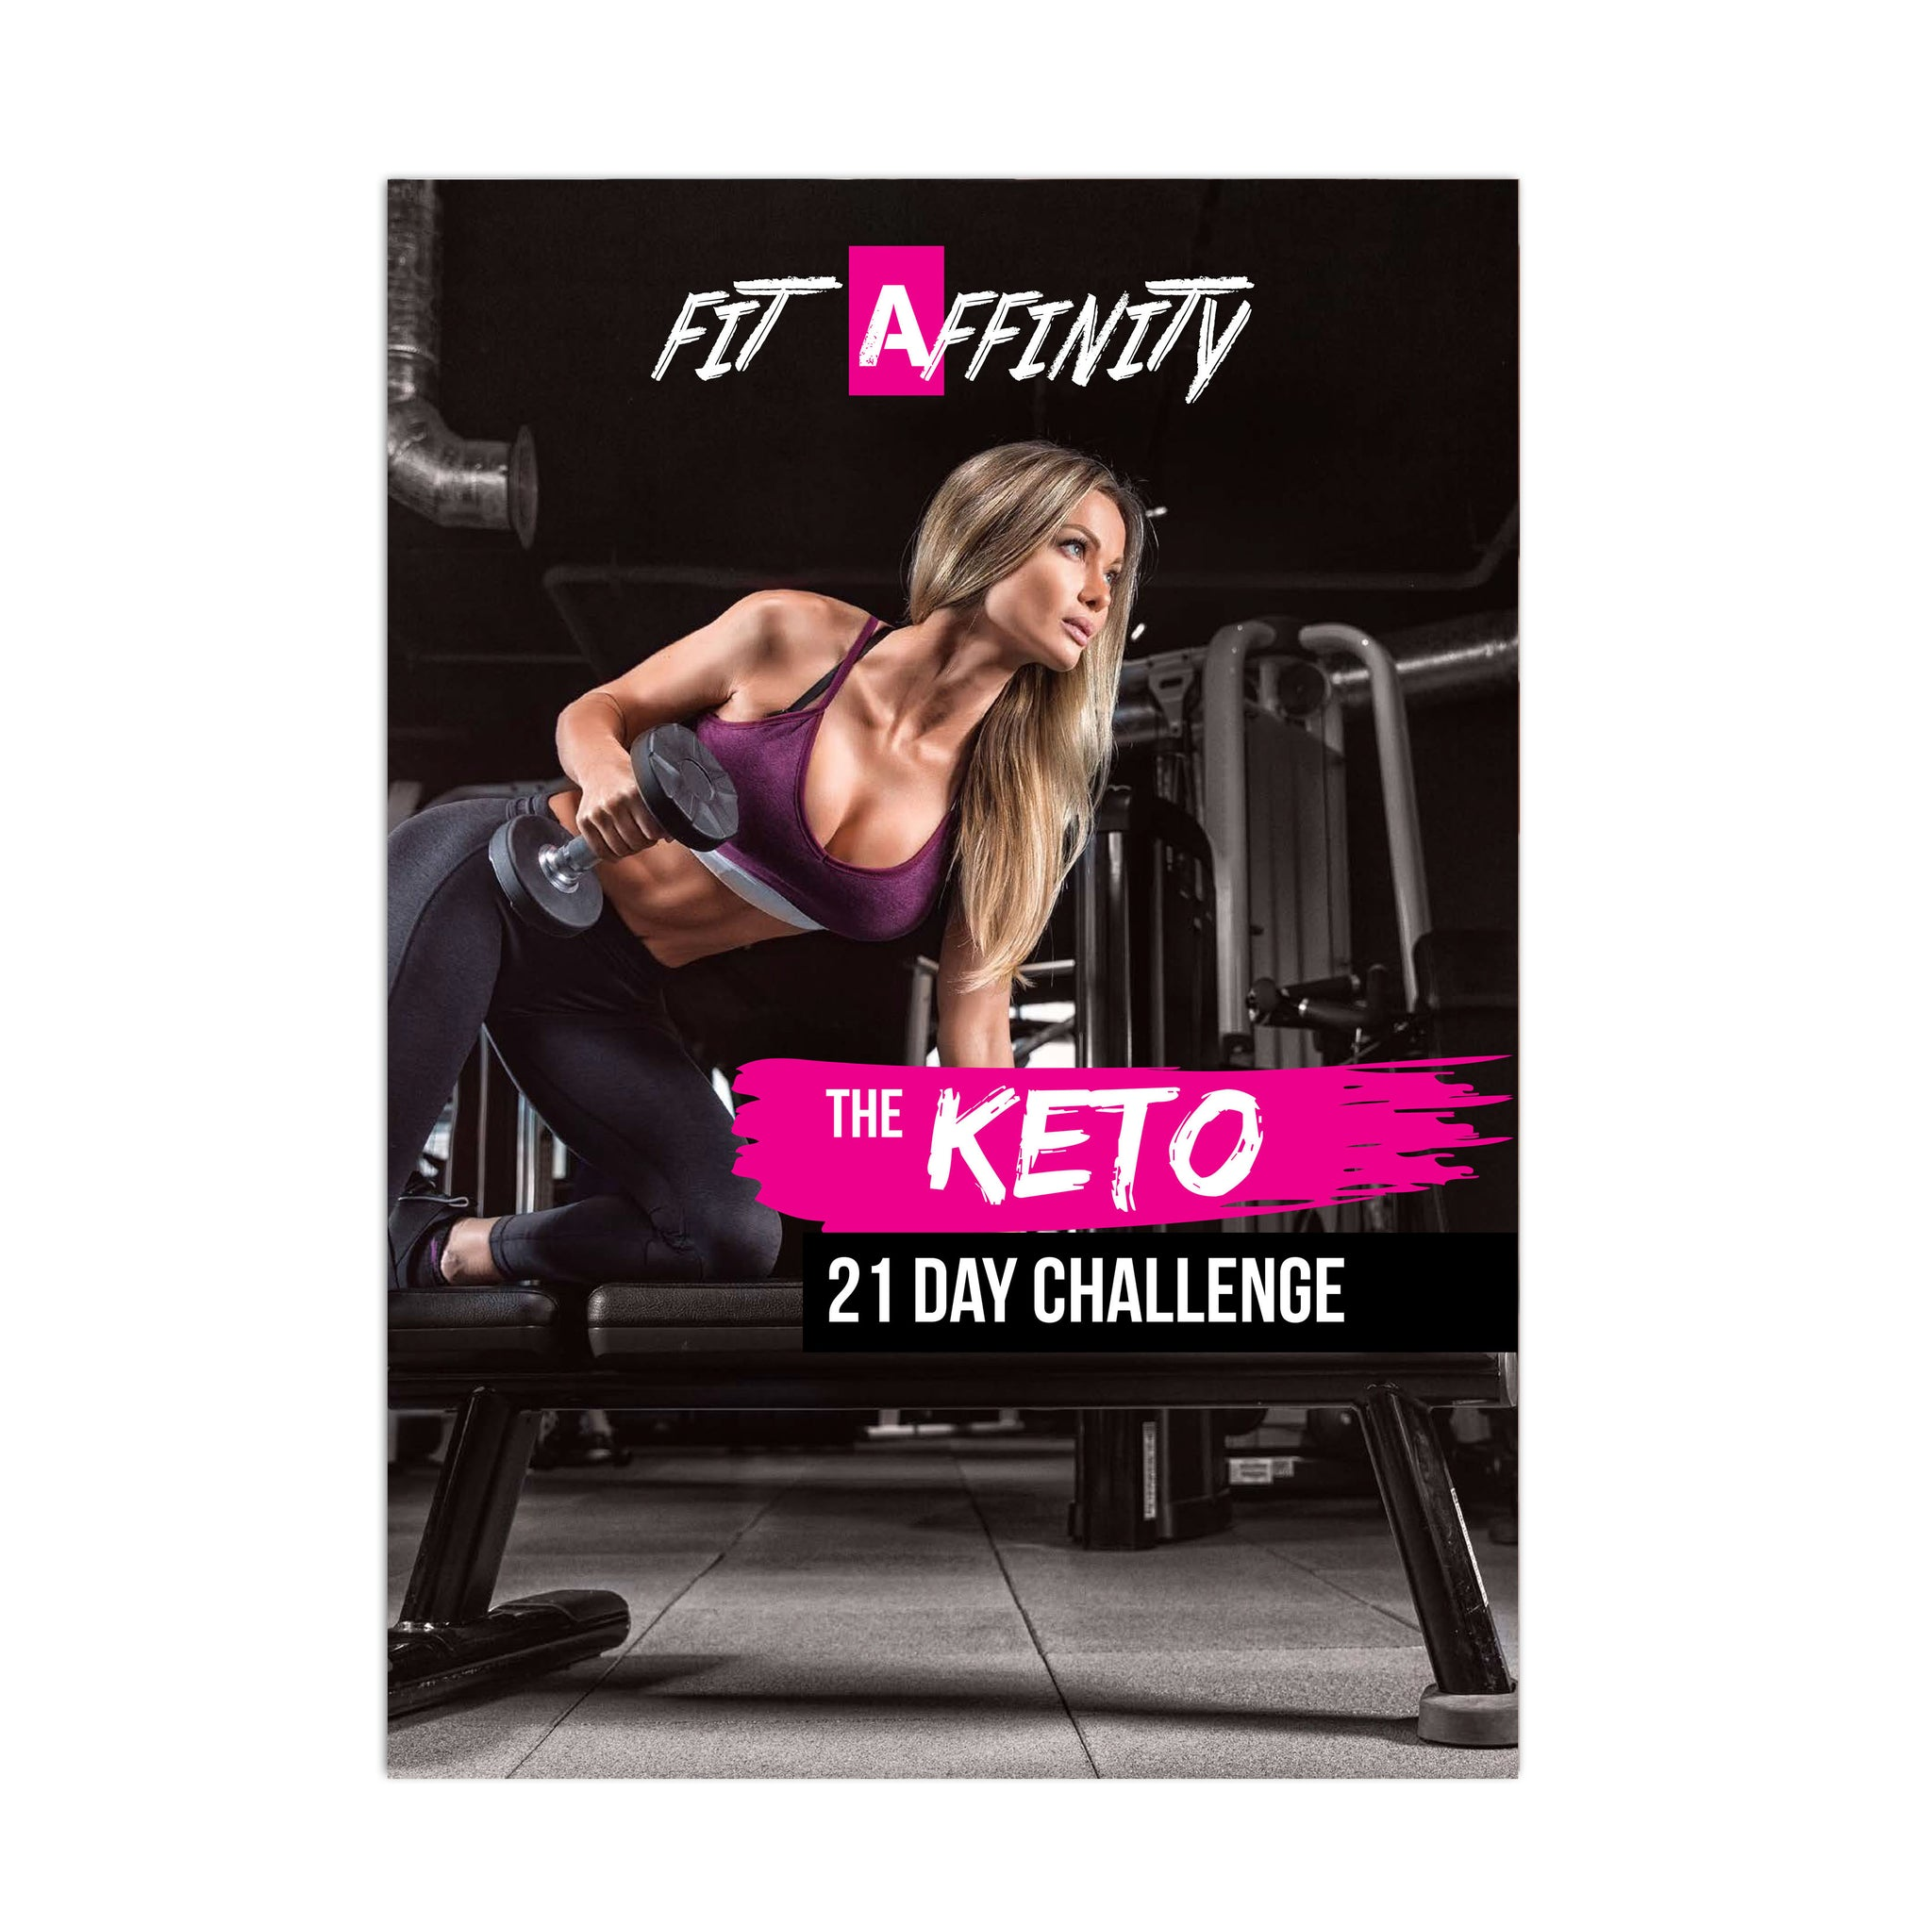 Keto - 21 Day Weight Loss Challenge